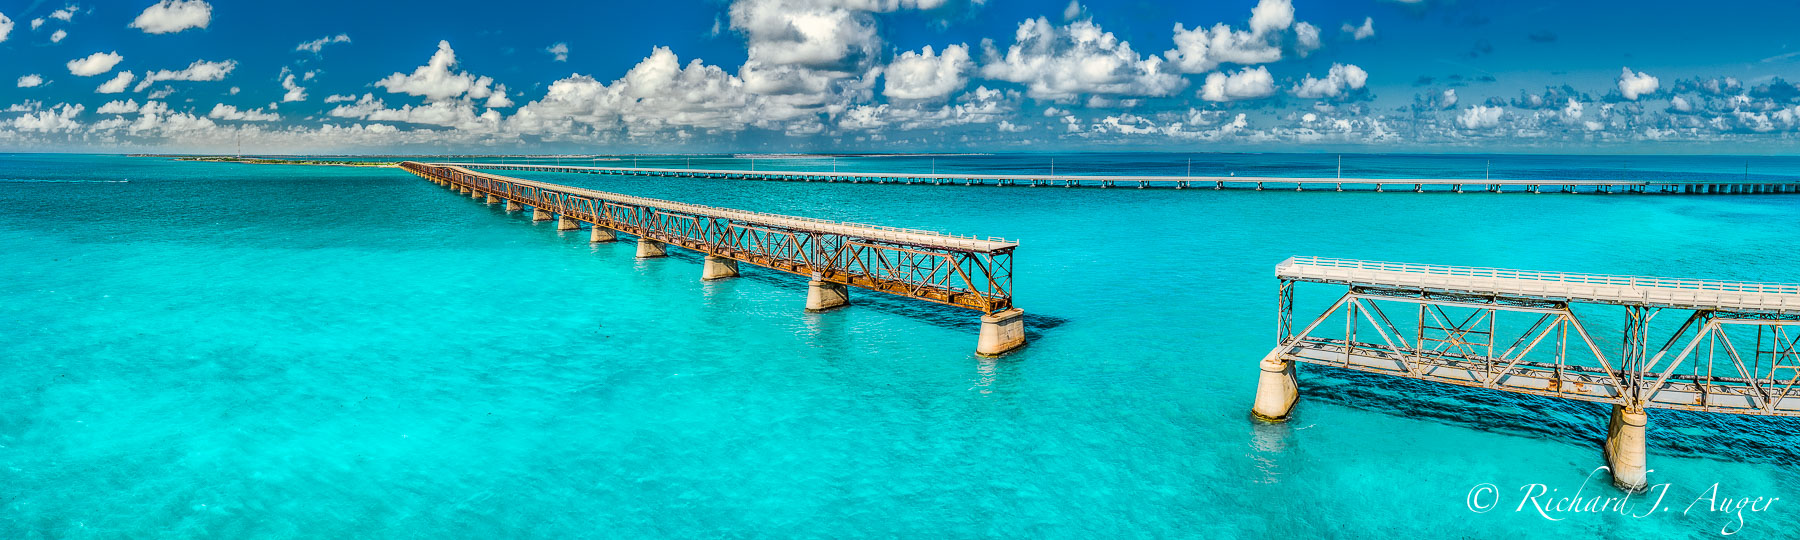 Bahia Honda, Bridge, Florida Keys, Blue, Aerial, Drone